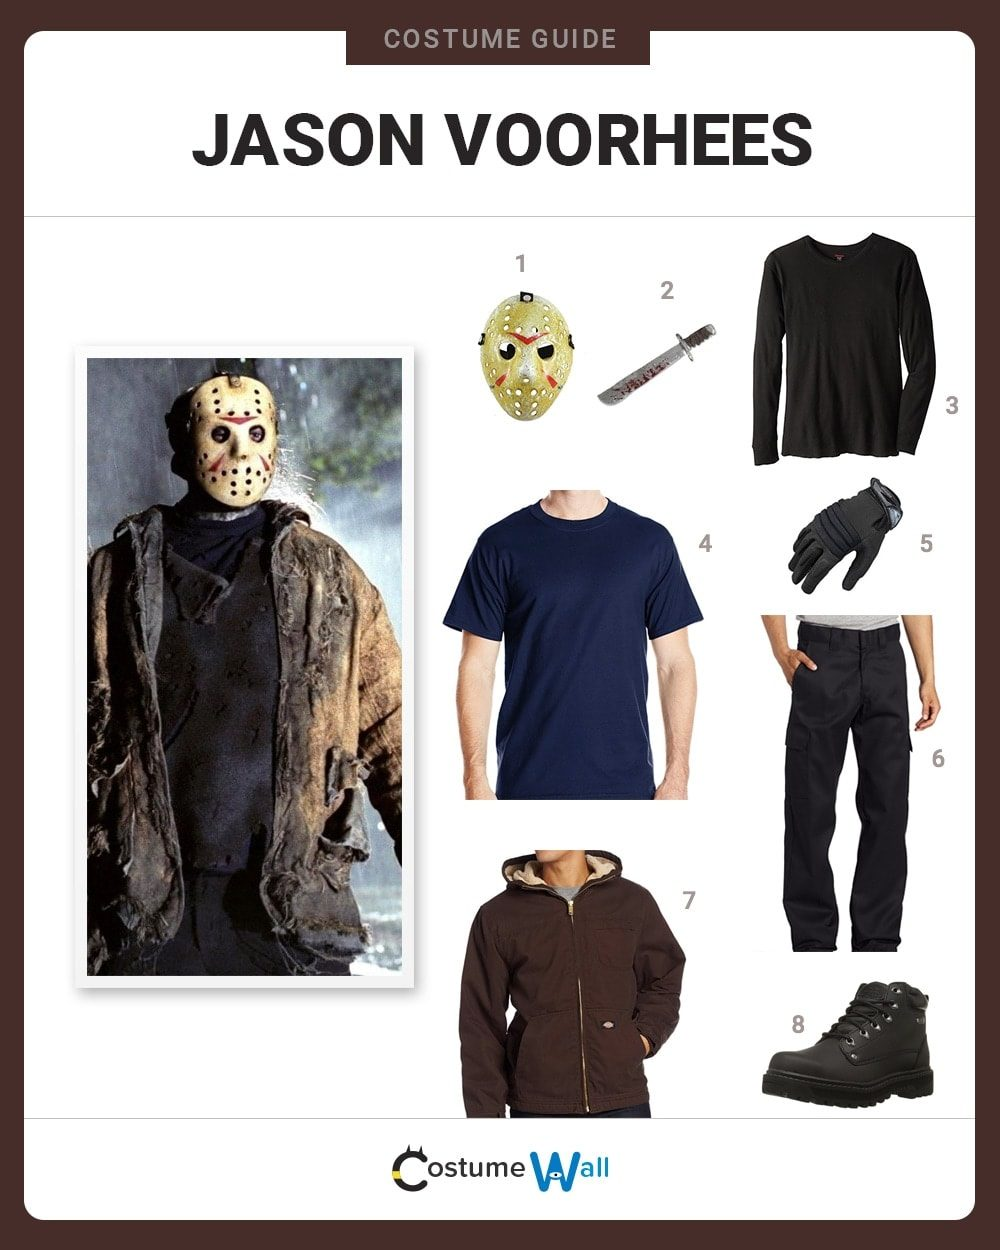 dress like jason voorhees costume | halloween and cosplay guides